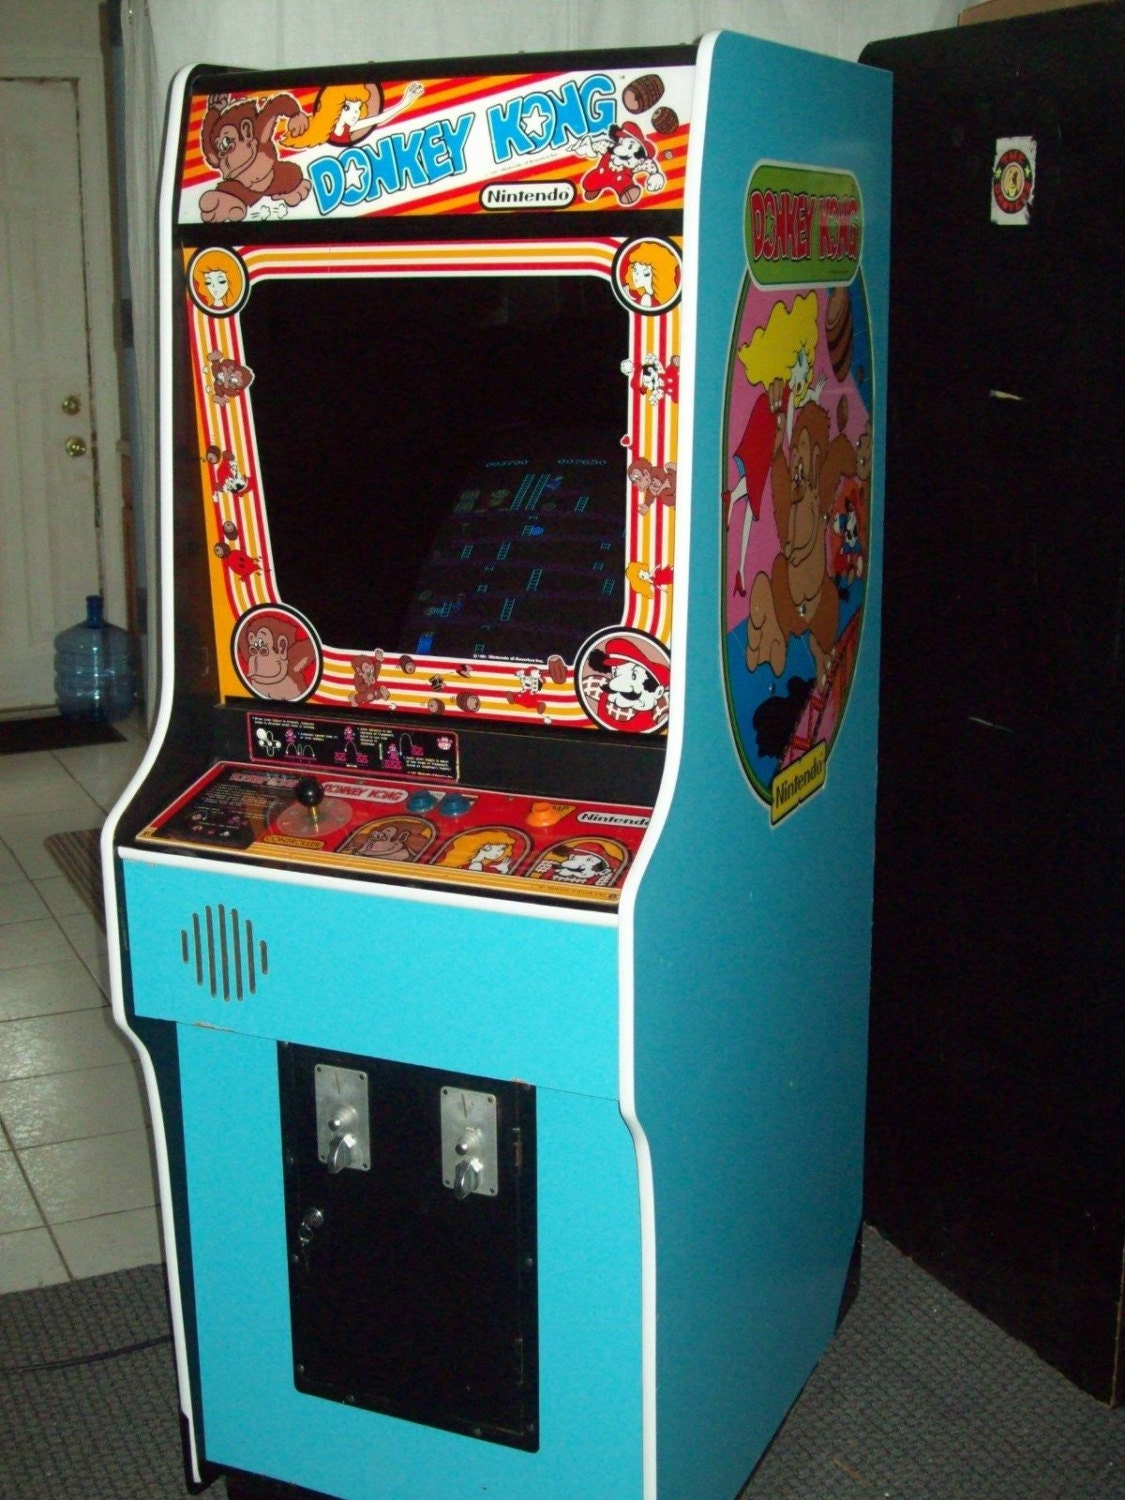 DONKEY KONG Fully Restored Original Video Arcade Game with ...